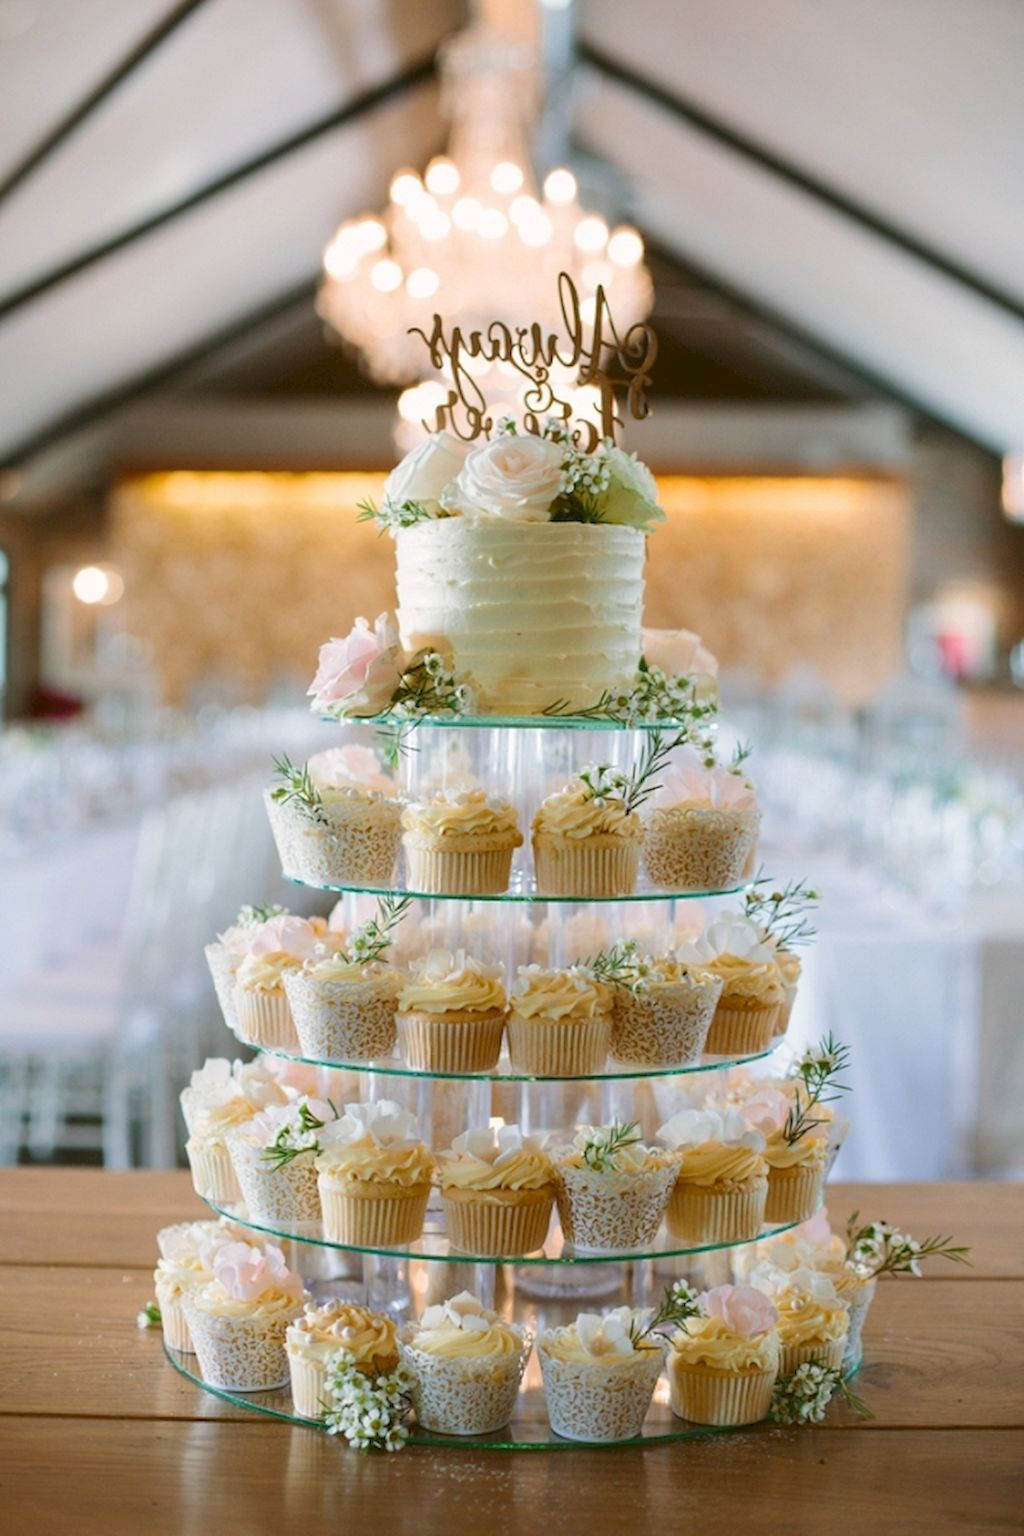 45+ Wedding cupcake tower stand ideas in 2021